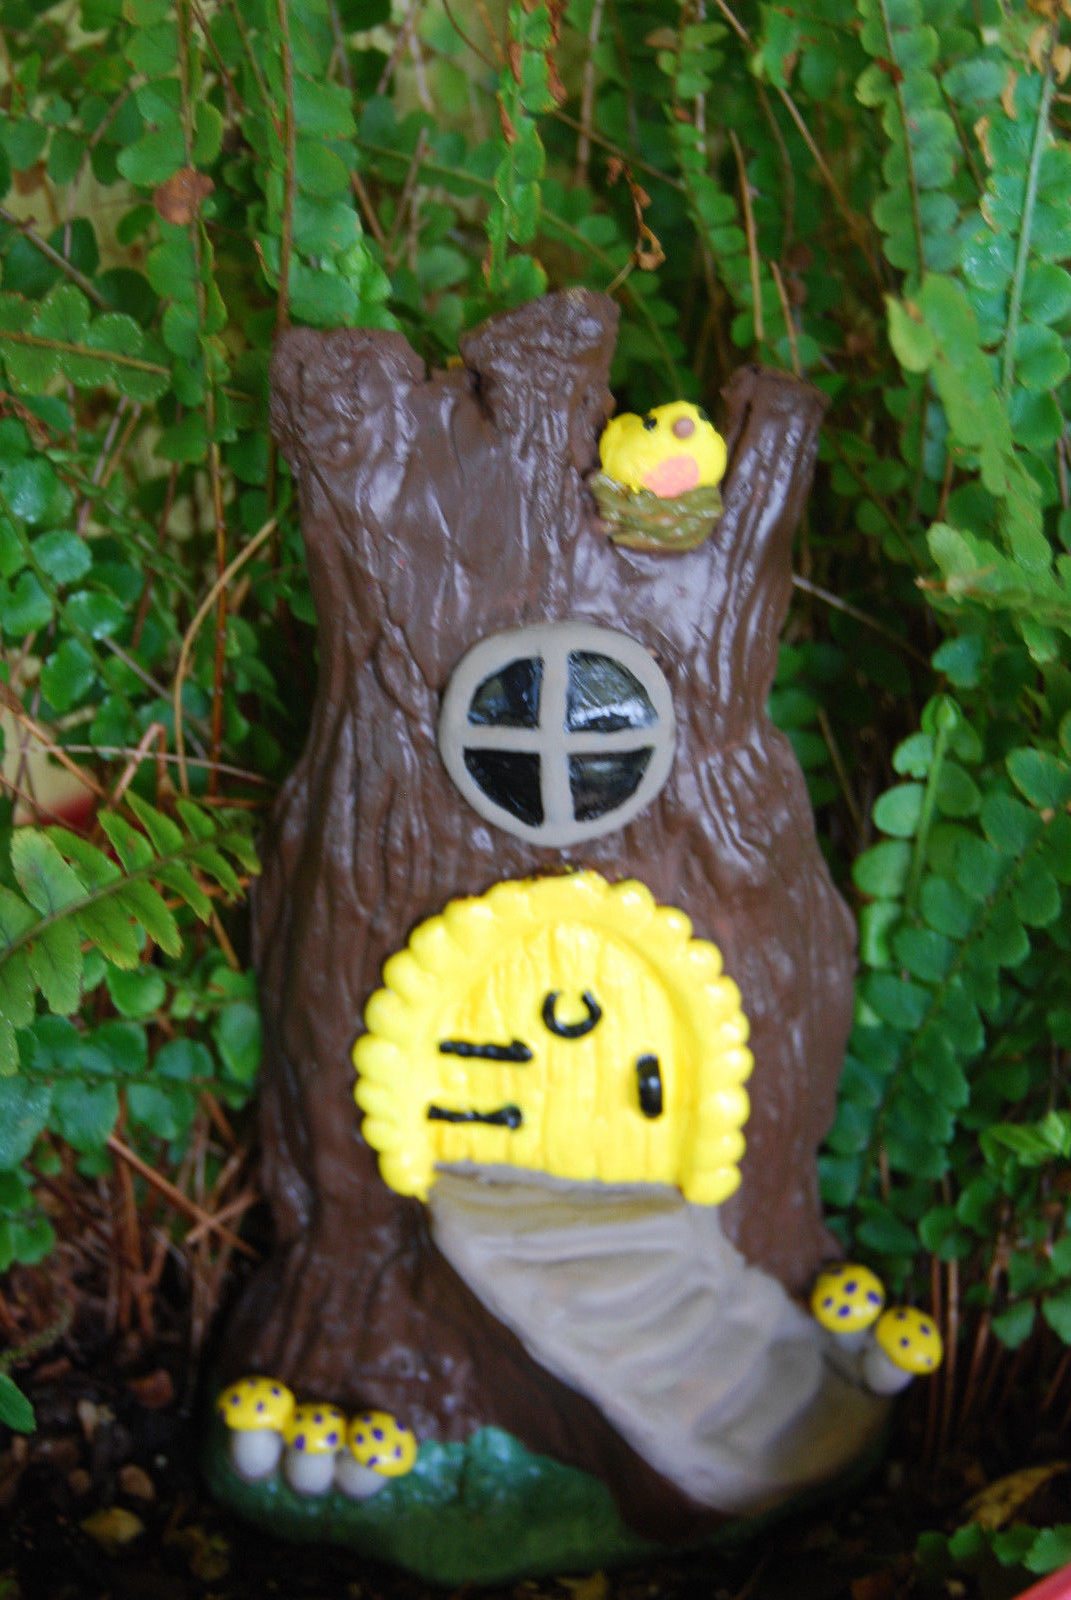 Magic Tree House Fairy Hobbit Elf Home Decoration - Paint Your Own - DIY Craft